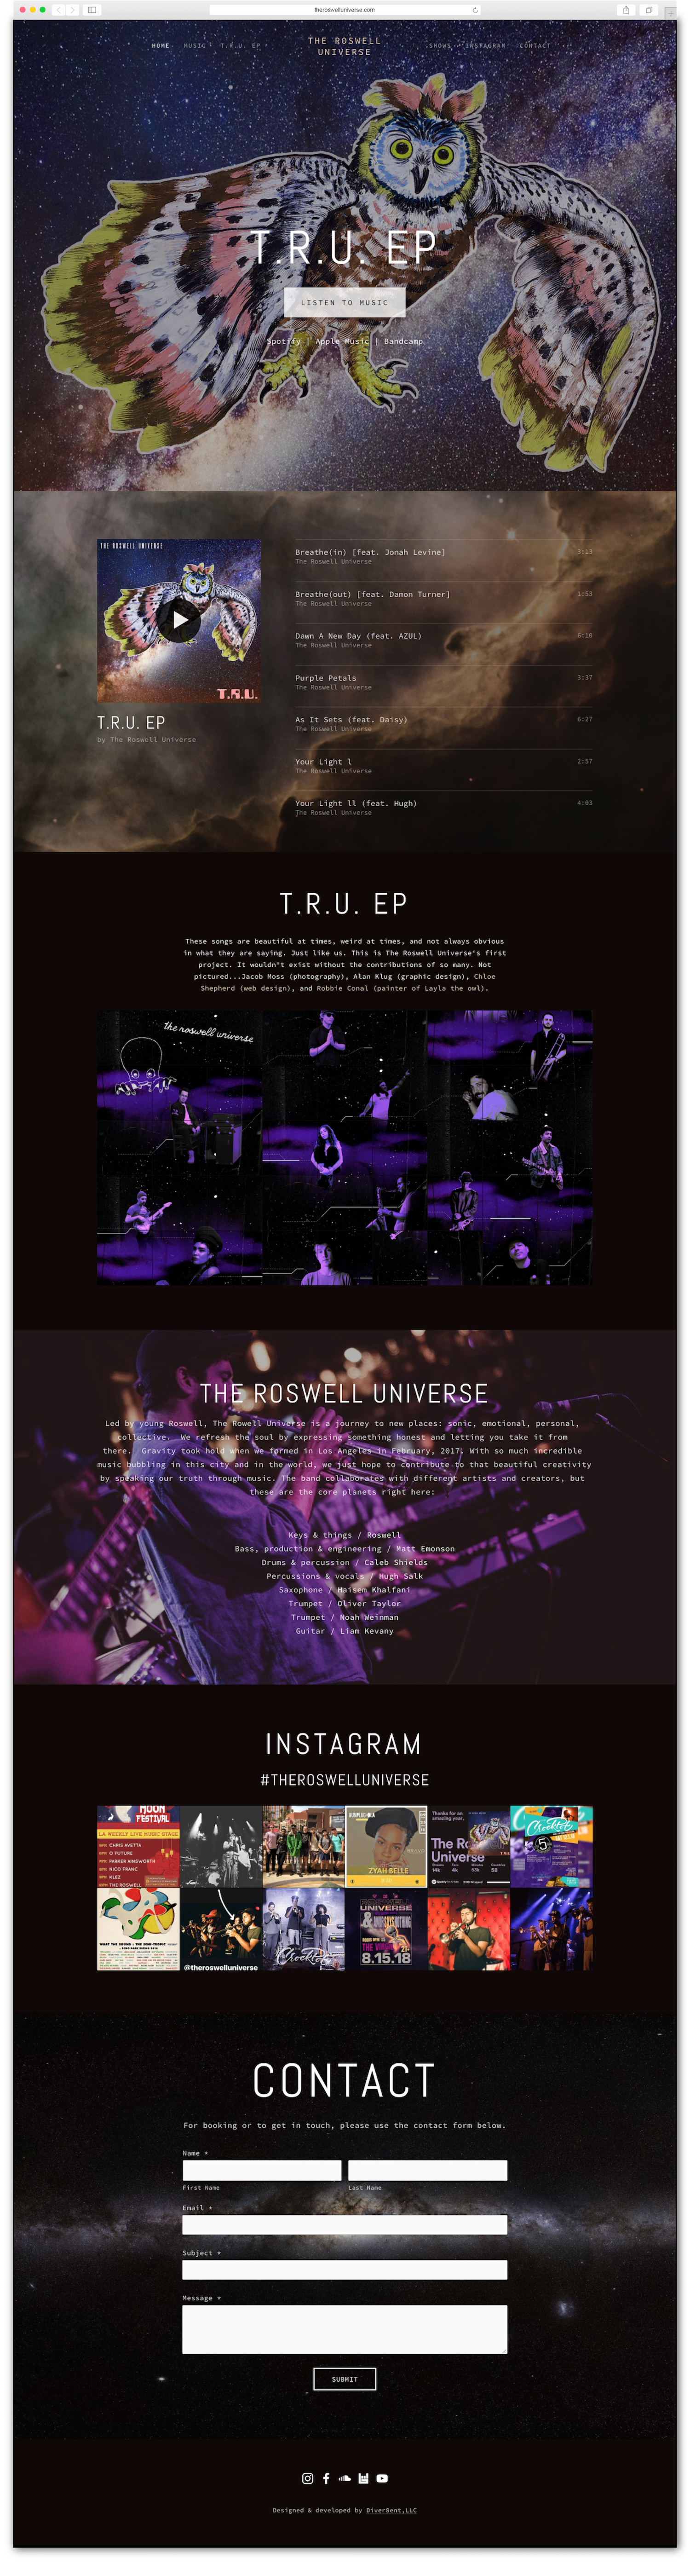 roswell-universe-website.png